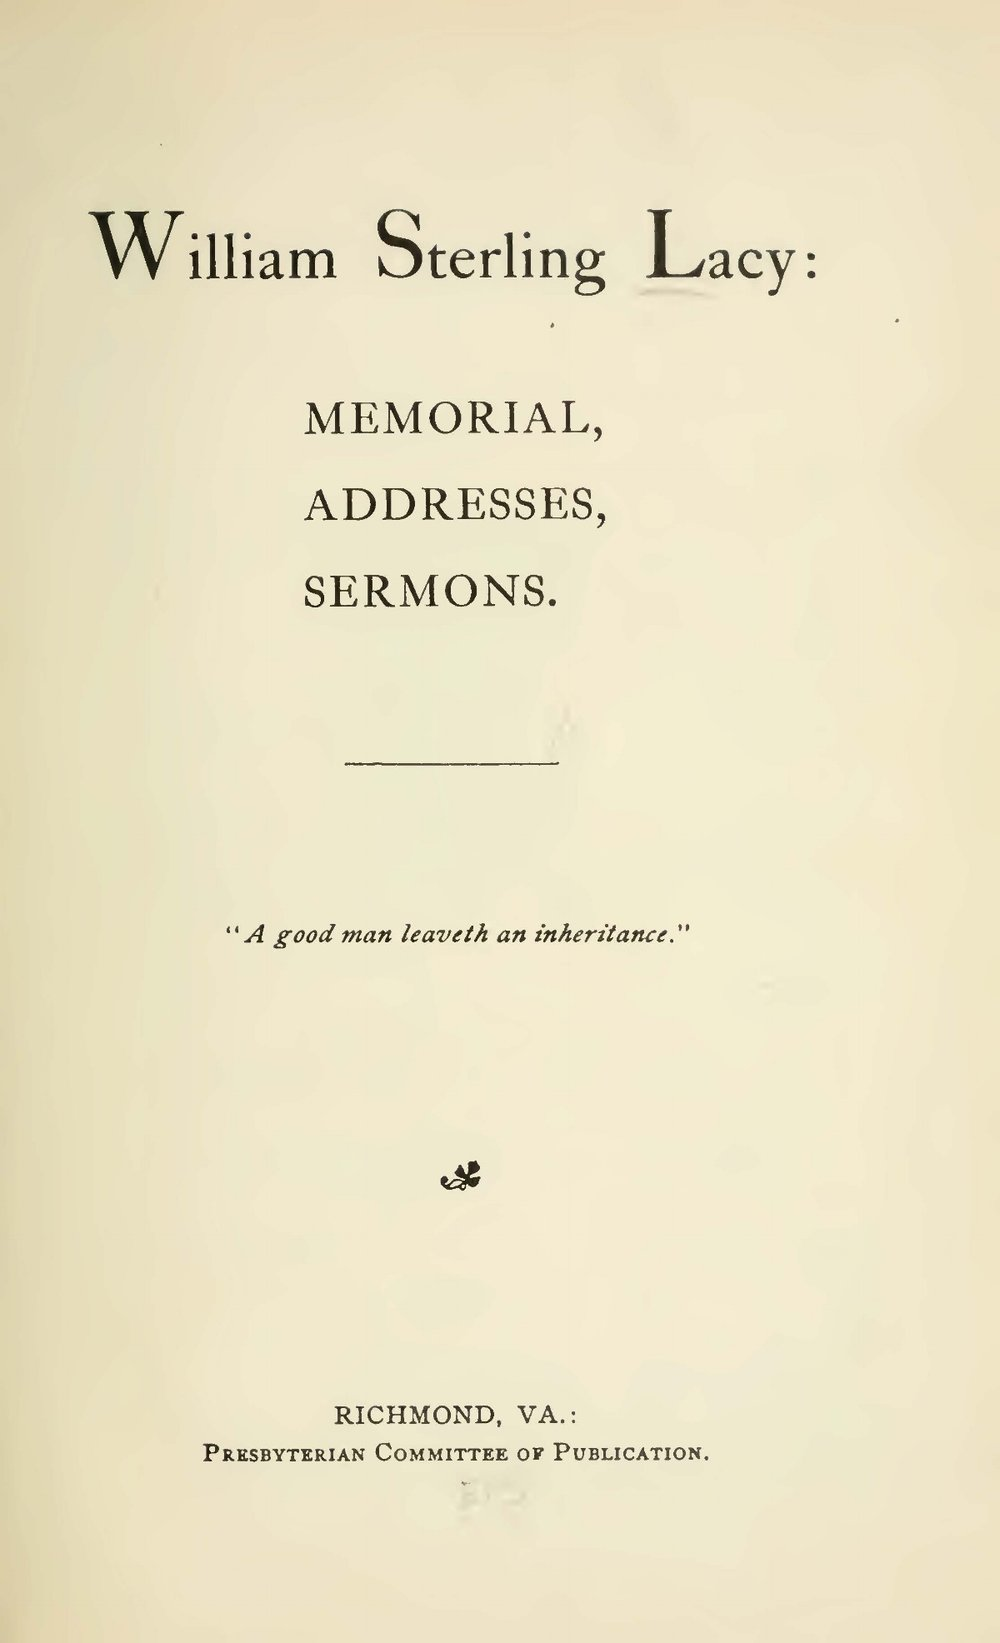 Lacy, William Sterling, William Sterling Lacy Memorial Addresses Sermons Title Page.jpg